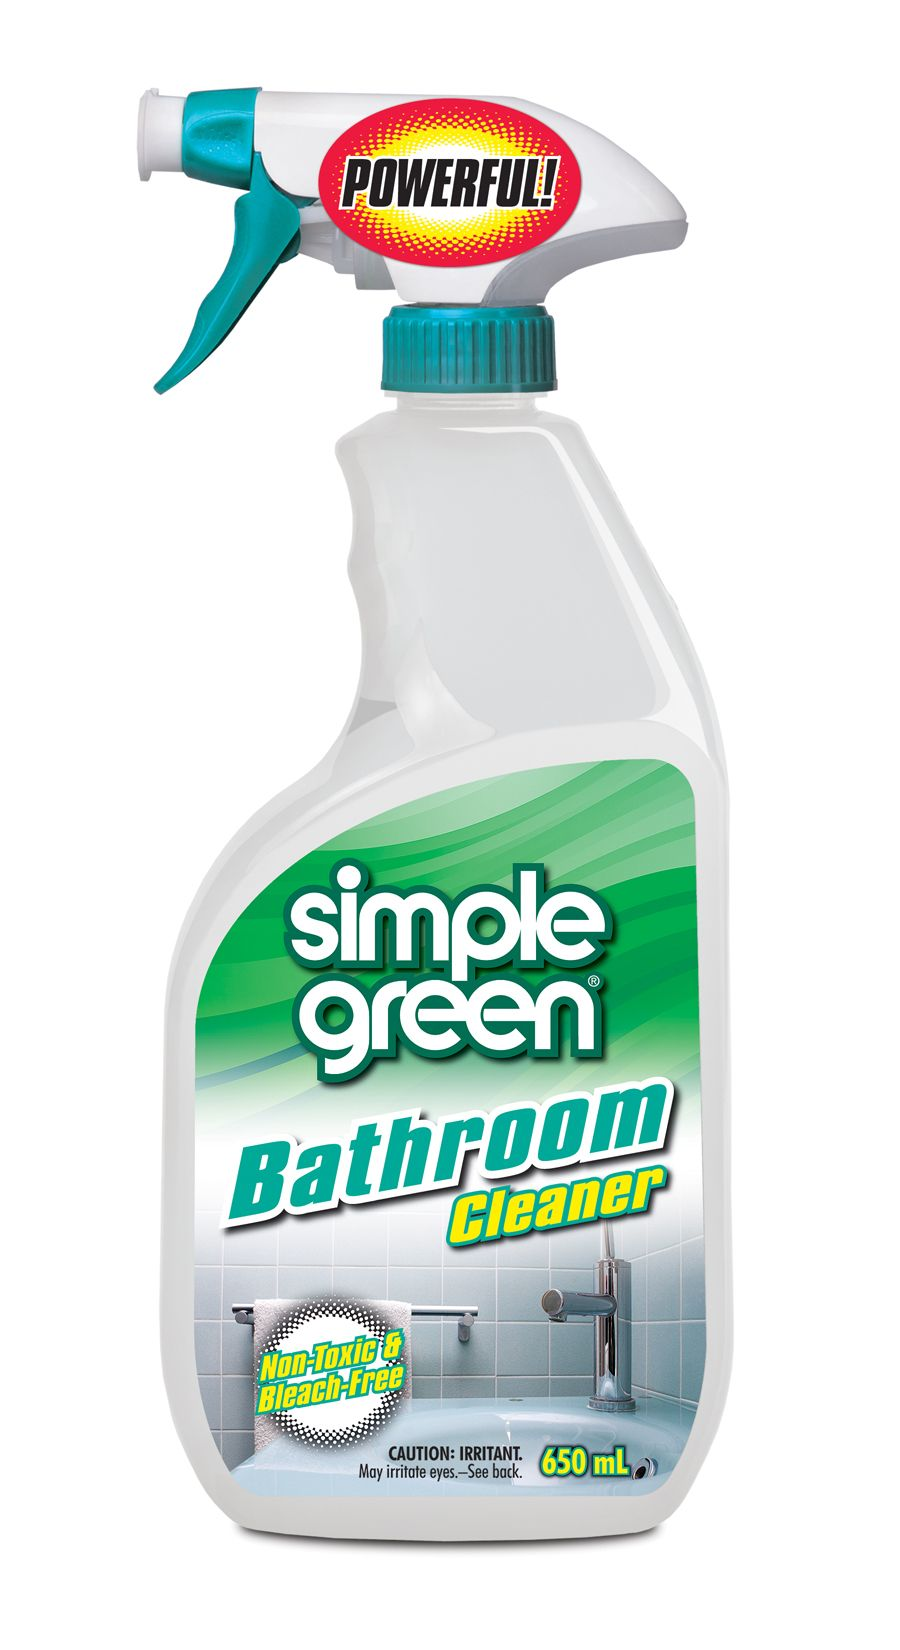 Simple Green 174 Bathroom Cleaner Rtu 650ml Www Simplegreen